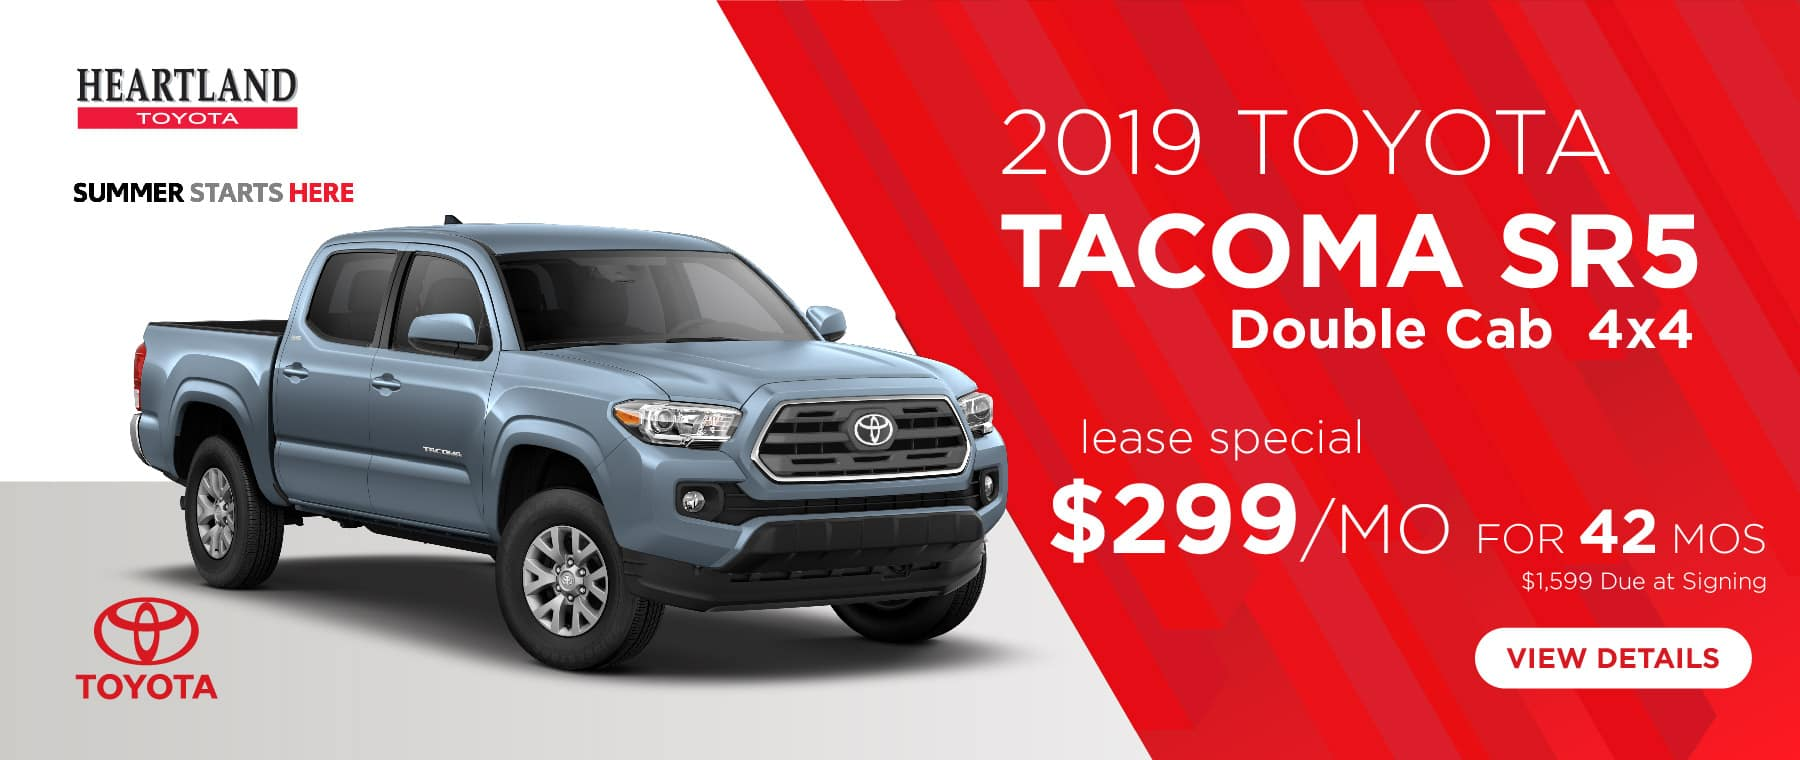 2019 Toyota Tacoma SR5 (Featured Vehicle)  $299/mo. For 42 months* *Offer valid on 2019 Toyota Tacoma SR5 (7540). $299 per mo. for 42 months. Lease with $1,599 due at signing; includes a $695 acquisition fee. Valid on VIN: 3TMCZ5AN4KM247869, 3TMCZ5AN0KM246086. MSRP $35,935. Deal #347932. Subject to credit approval. No Security deposit required. Excludes taxes, title, and fees. 42 monthly payments required. Not all lessees will qualify for lowest payment through participating lender. Residency restrictions apply. Lessee responsible for mileage over 10,000 miles per year at $0.25/mile per year. Option to purchase at lease end. A negotiable dealer documentary service fee of up to $150 may be added to the sale price or capitalized cost. Offer expires 5/30/2019.